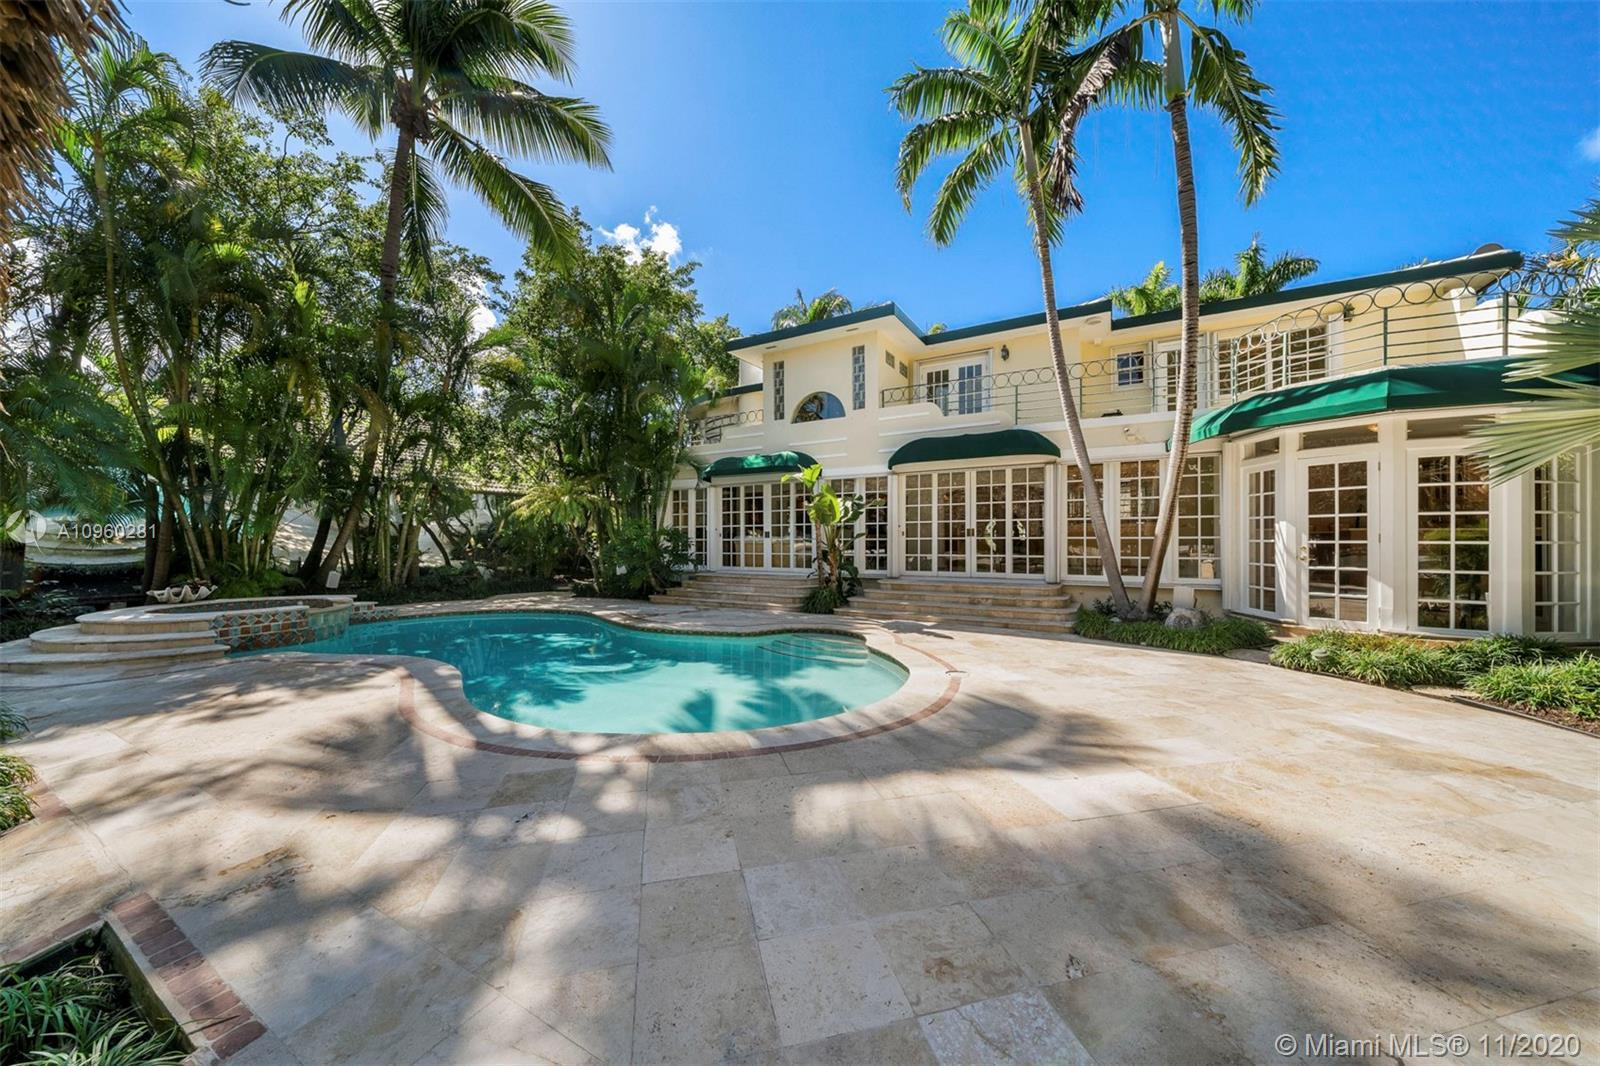 This 2-story Art Deco waterfront home on exclusive Pine Tree Drive is a must see. The 5BR/4+1BA home